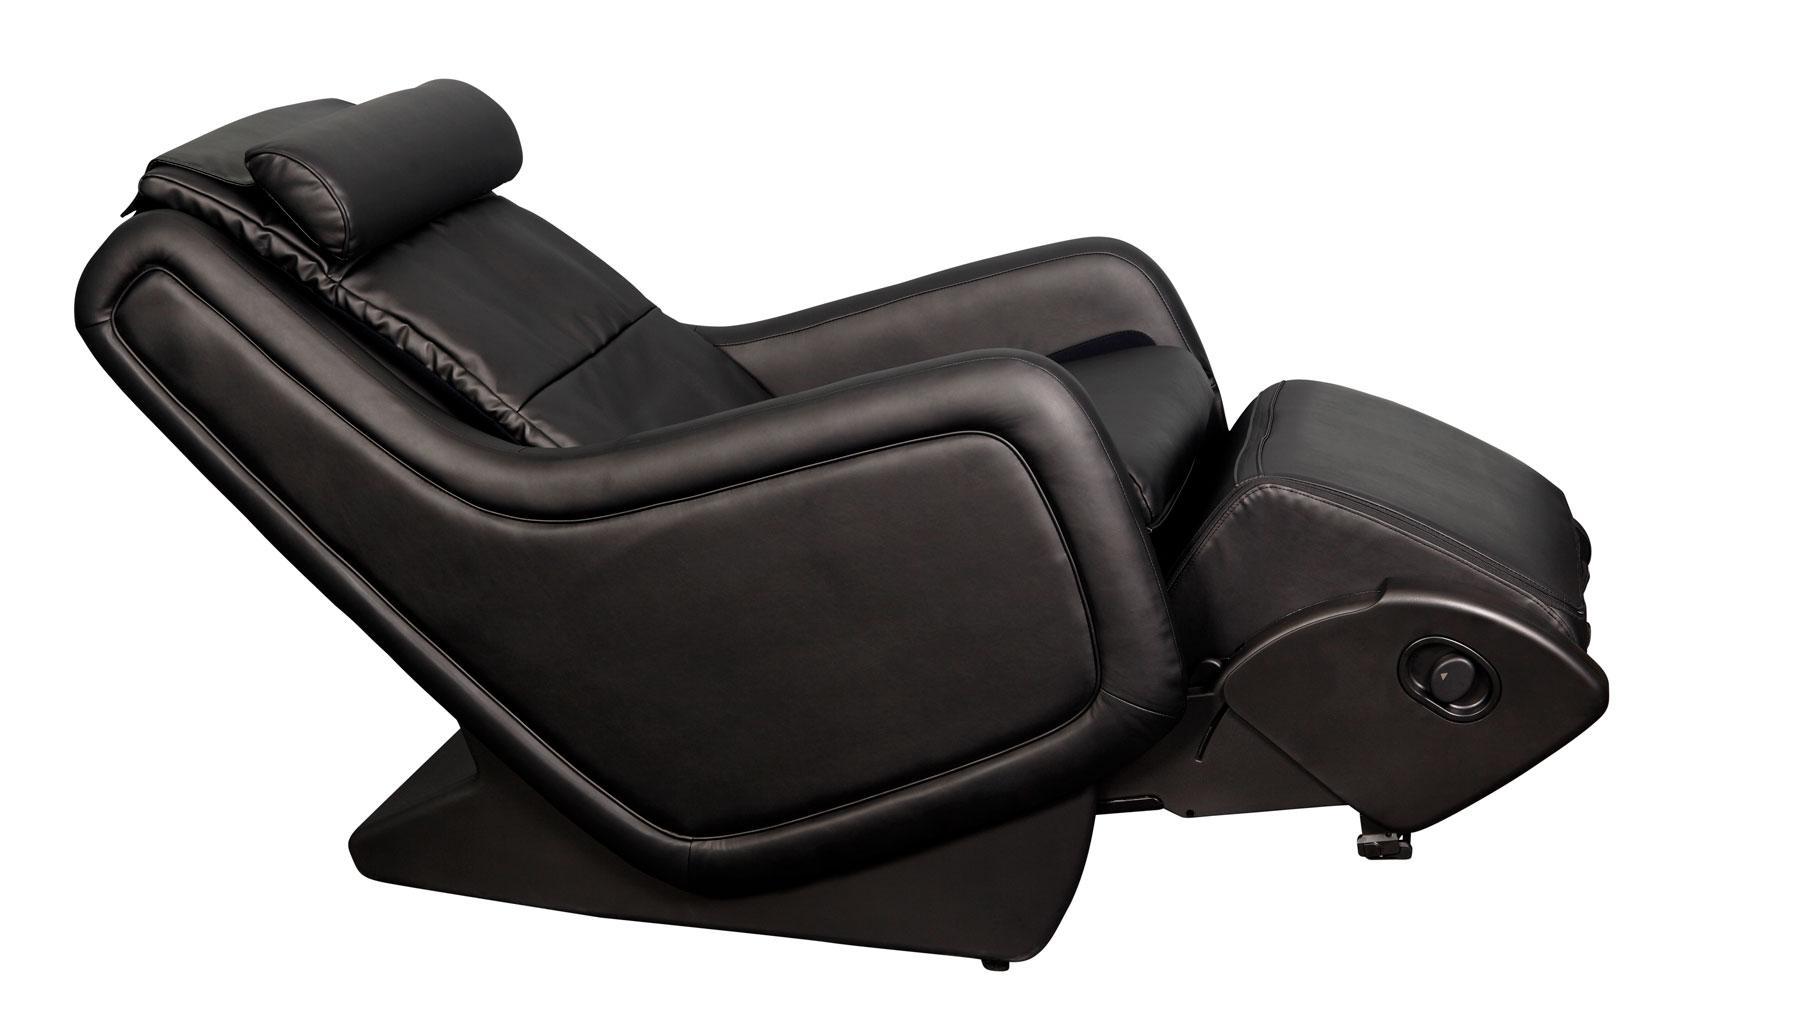 The Relaxa Massage Chair Office Furniture Store